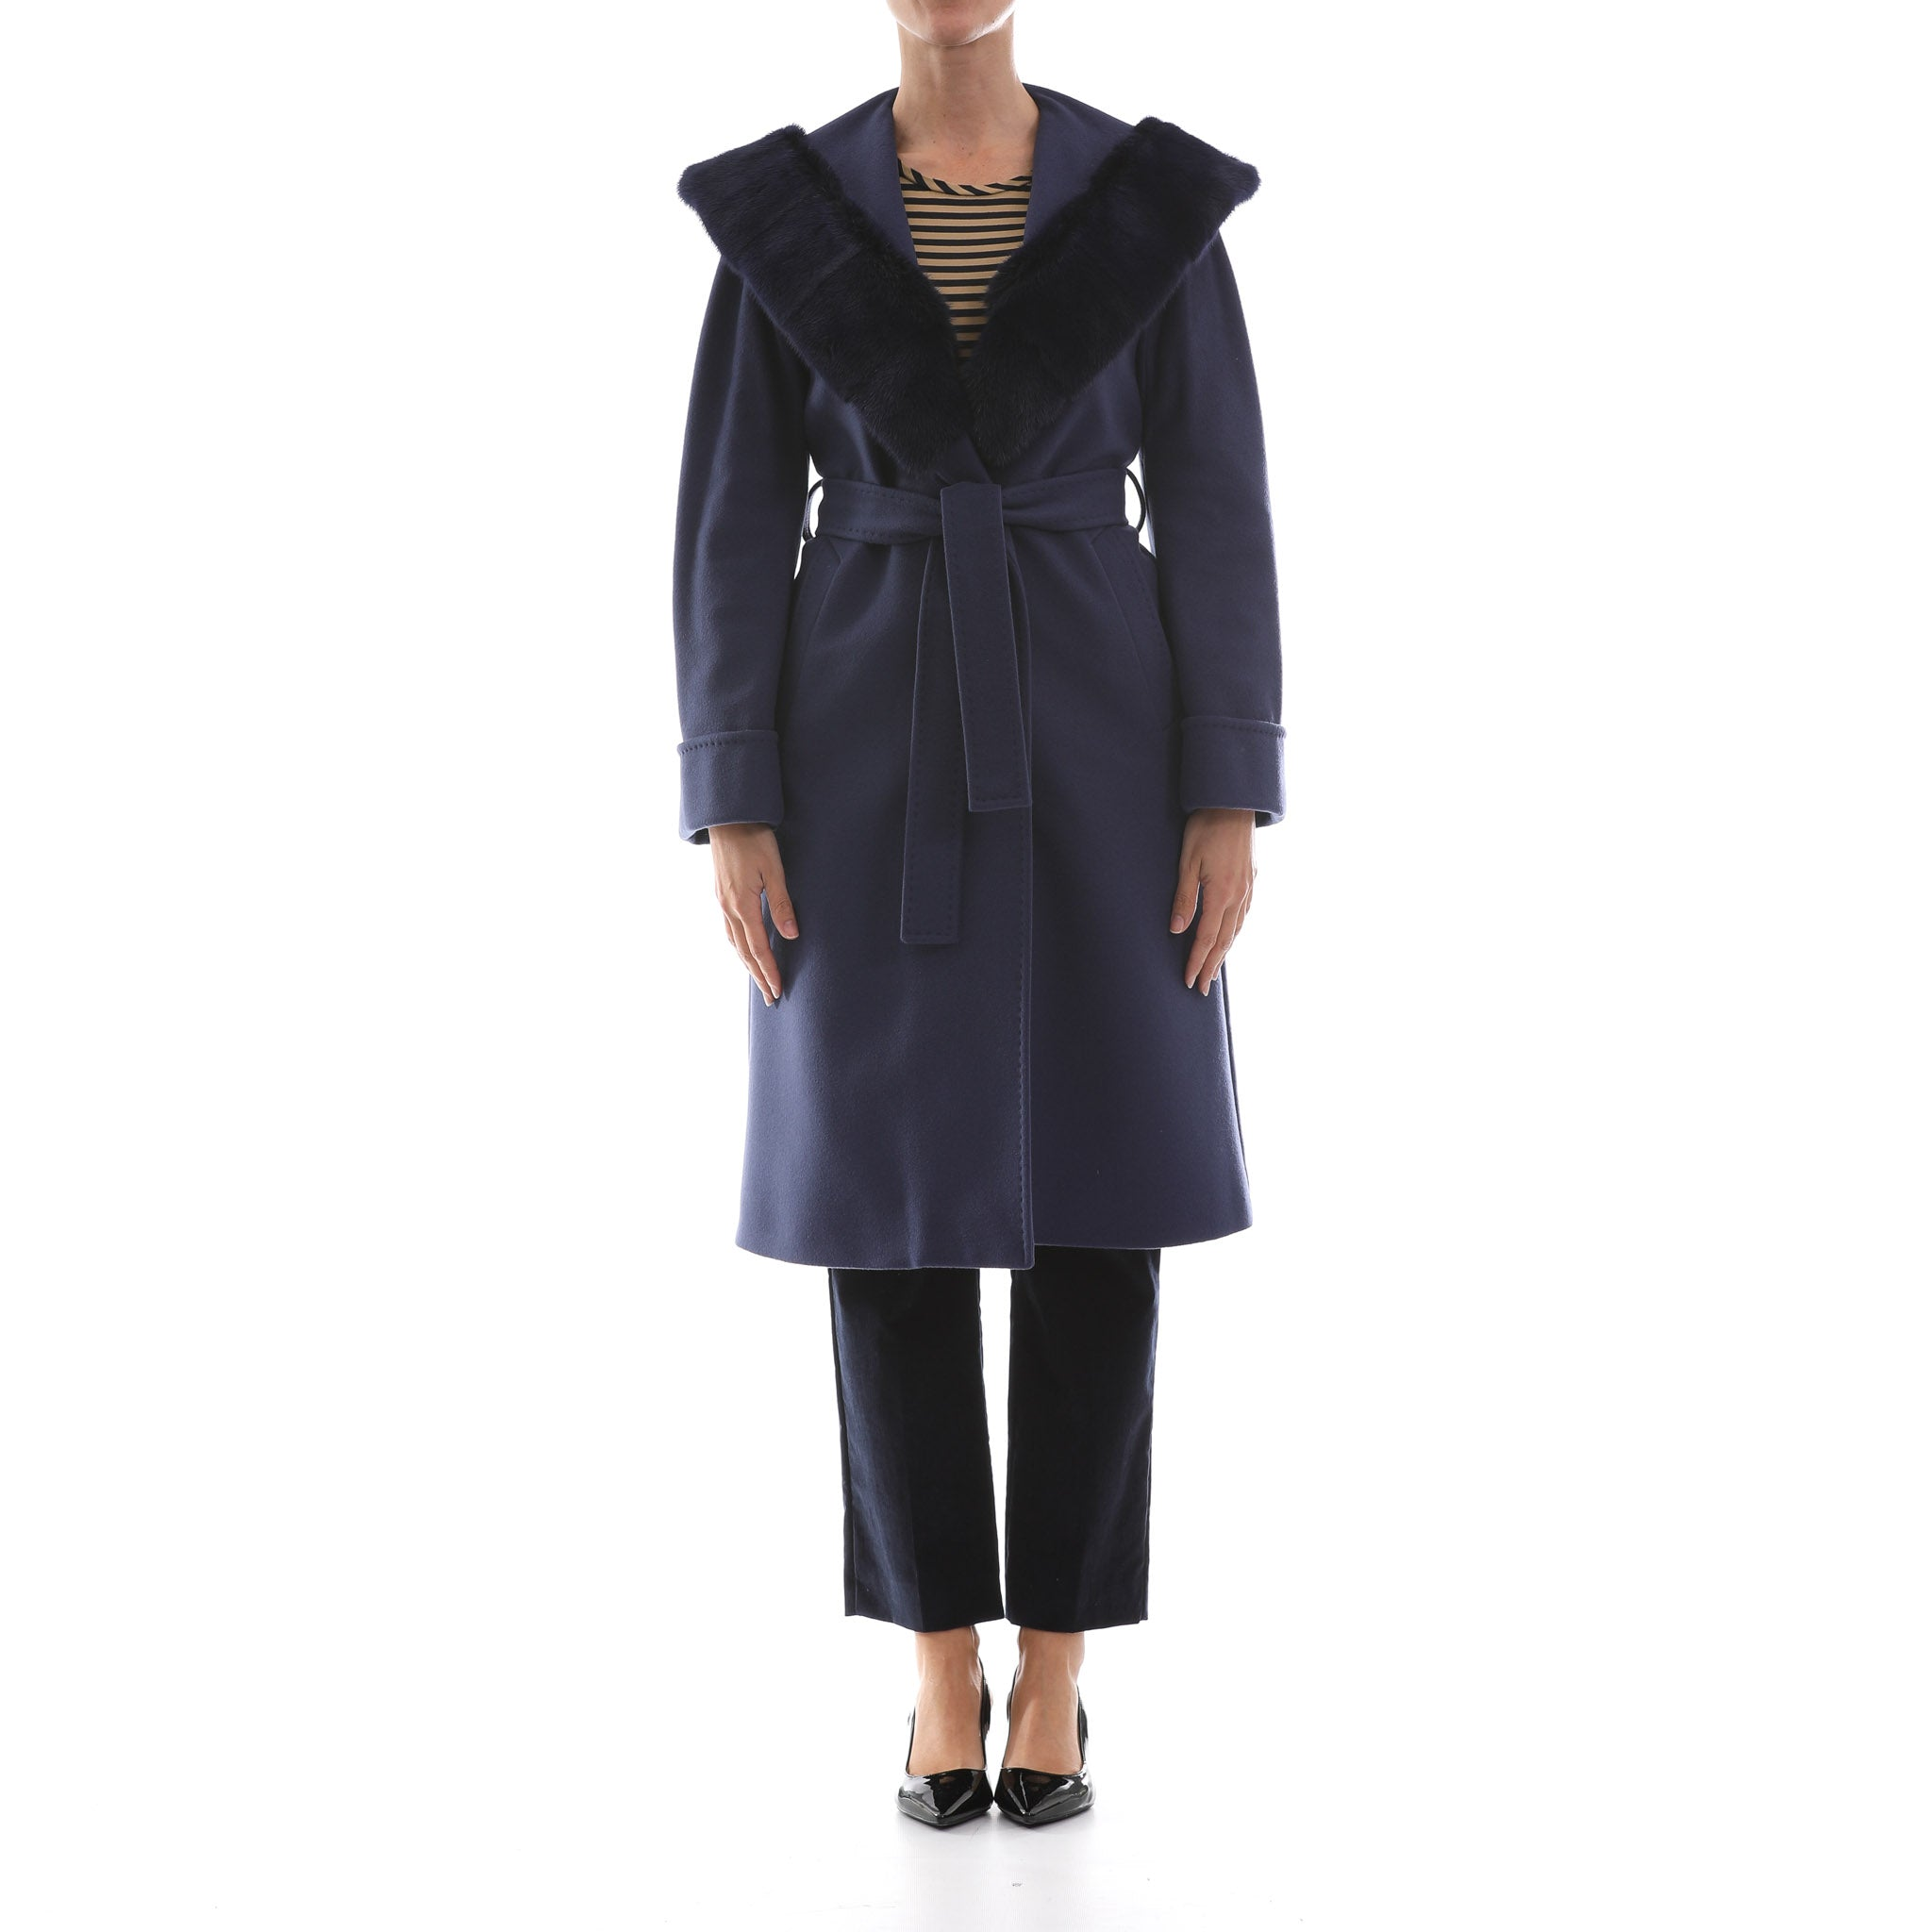 Heresis Wool And Cashmere Hooded Coat-HERESIS-SHOPATVOI.COM - Luxury Fashion Designer